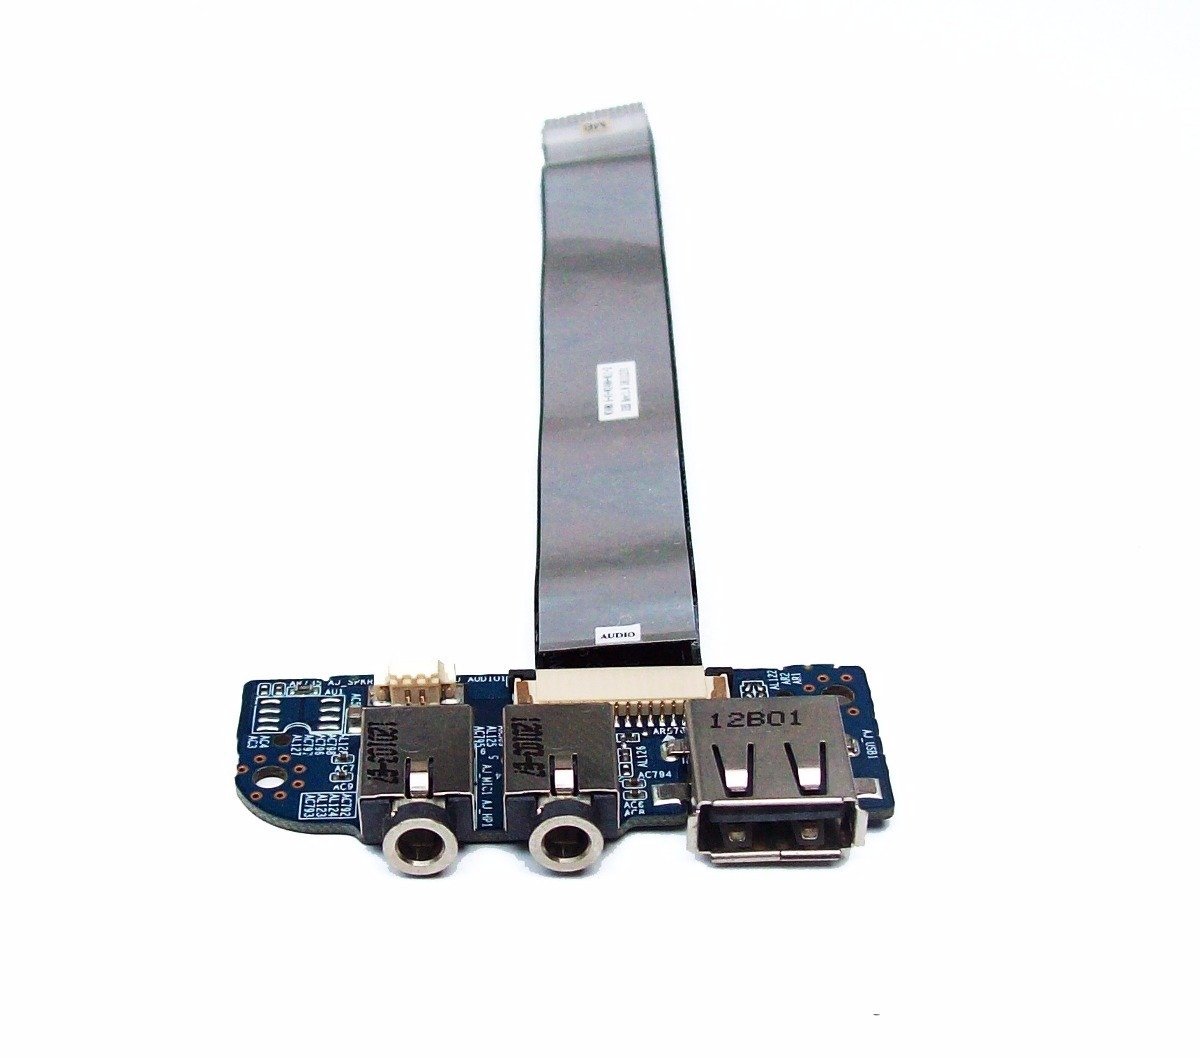 Placa USB e Áudio Notebook Itautec 6-71-w2408-d03 W240BU